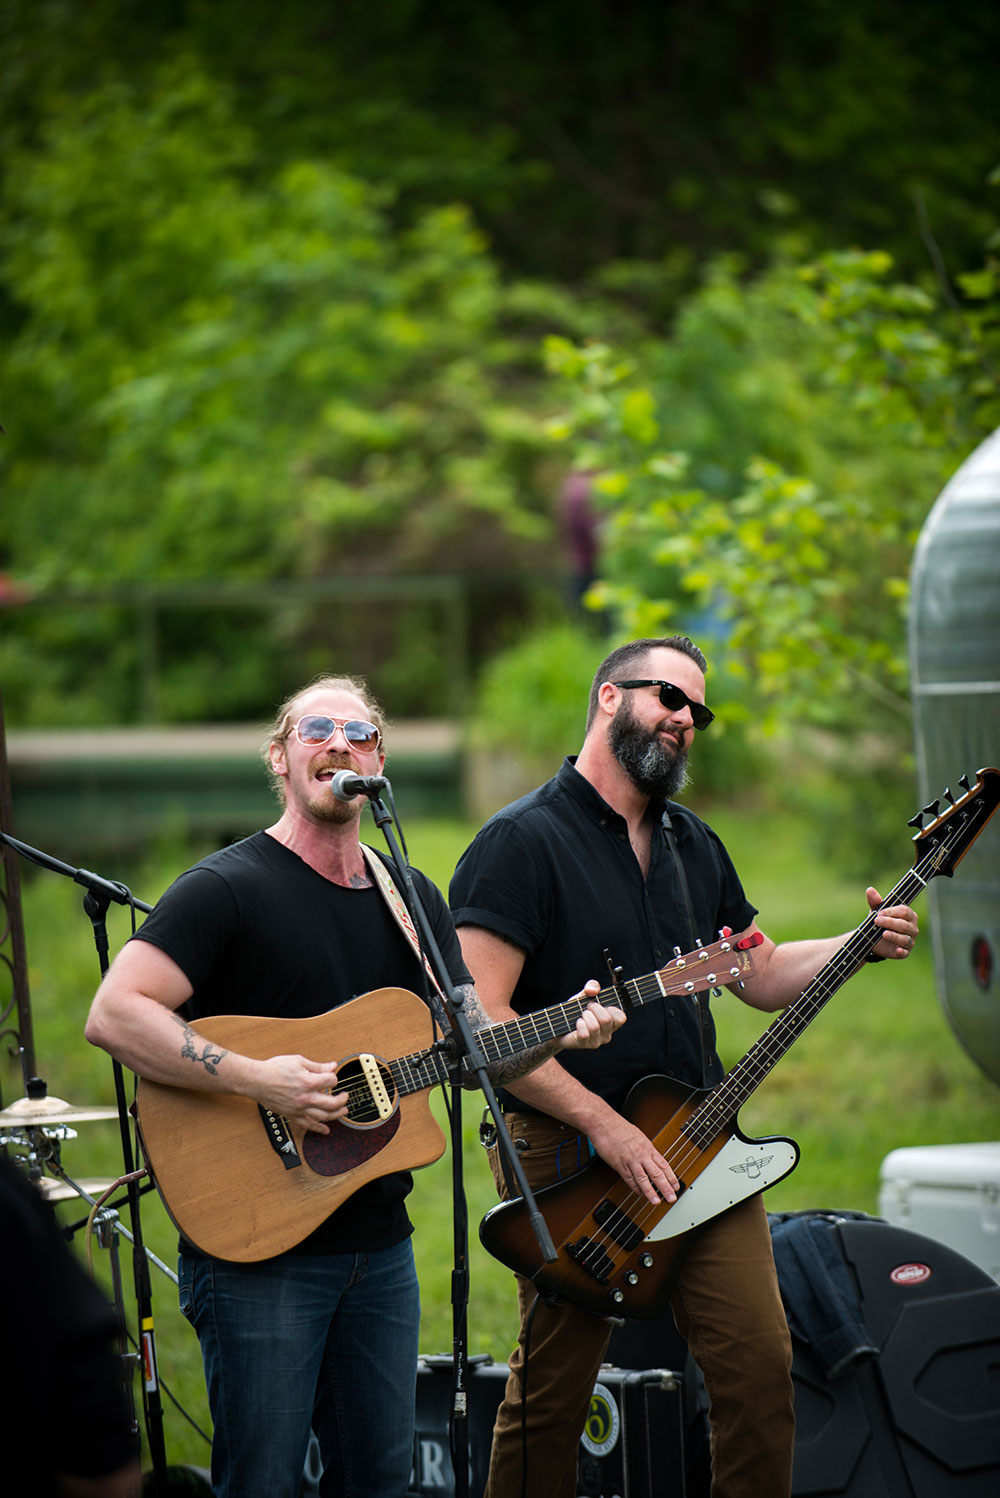 The-Moonshiners-Ball-2016-Peter-McDermott-copyright-protected- (3)